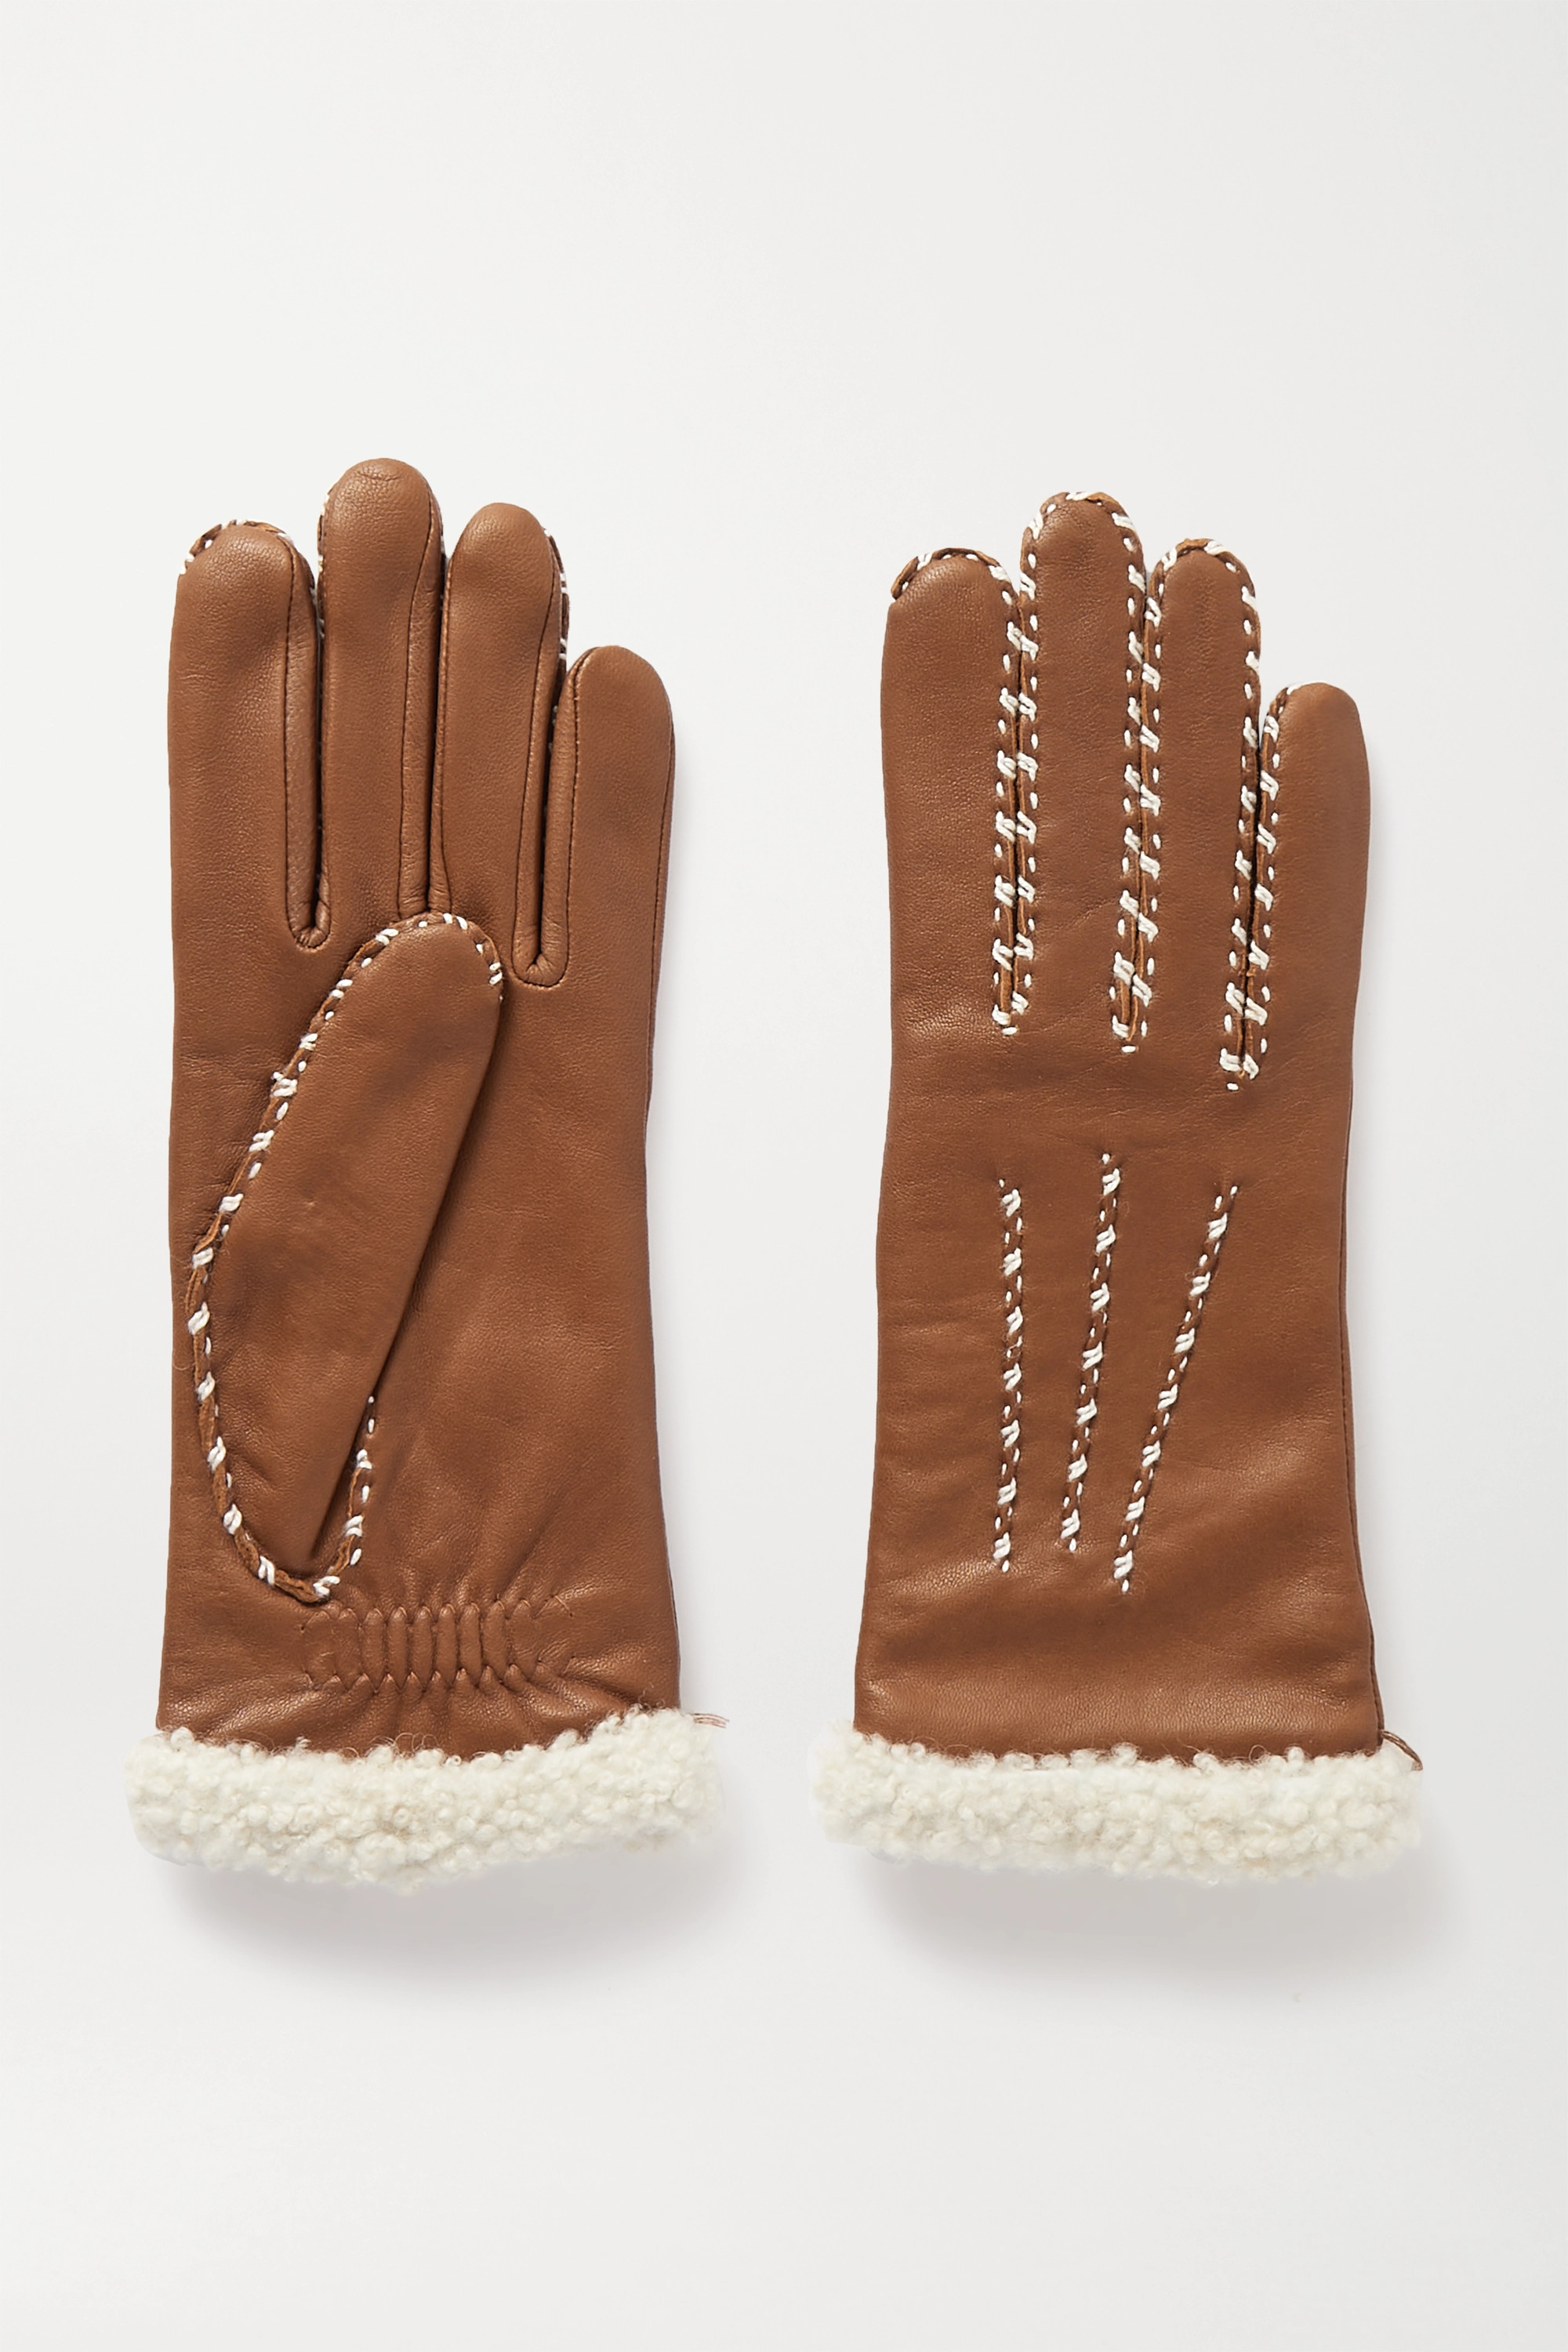 Agnelle Marie Louise alpaca-lined leather gloves